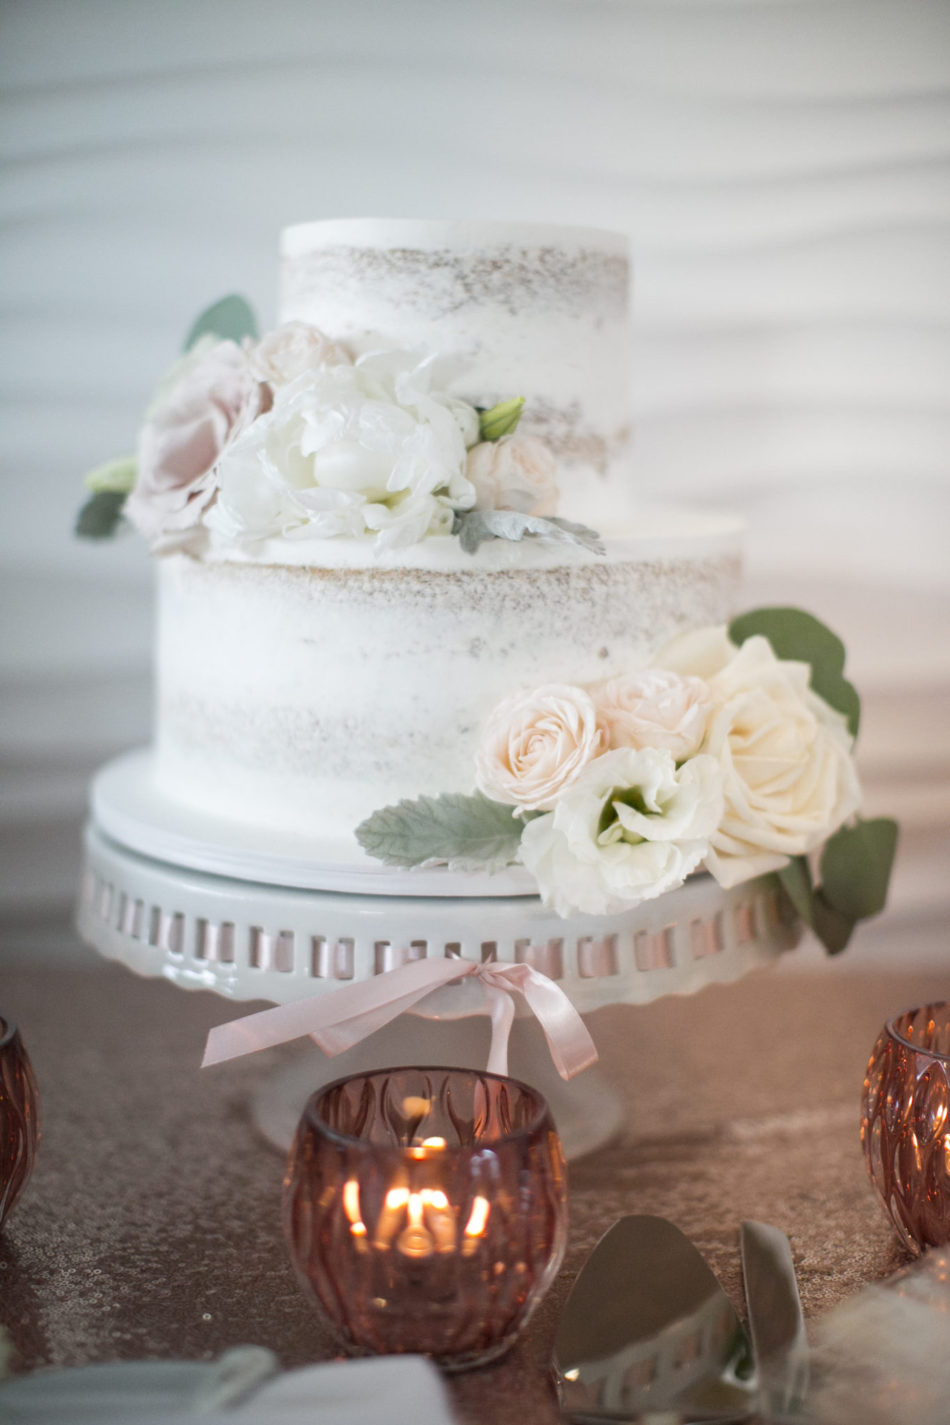 blush cake decor, white wedding cake, blush wedding cake, floral design, florist, wedding florist, wedding flowers, orange county weddings, orange county wedding florist, orange county florist, orange county floral design, flowers by cina